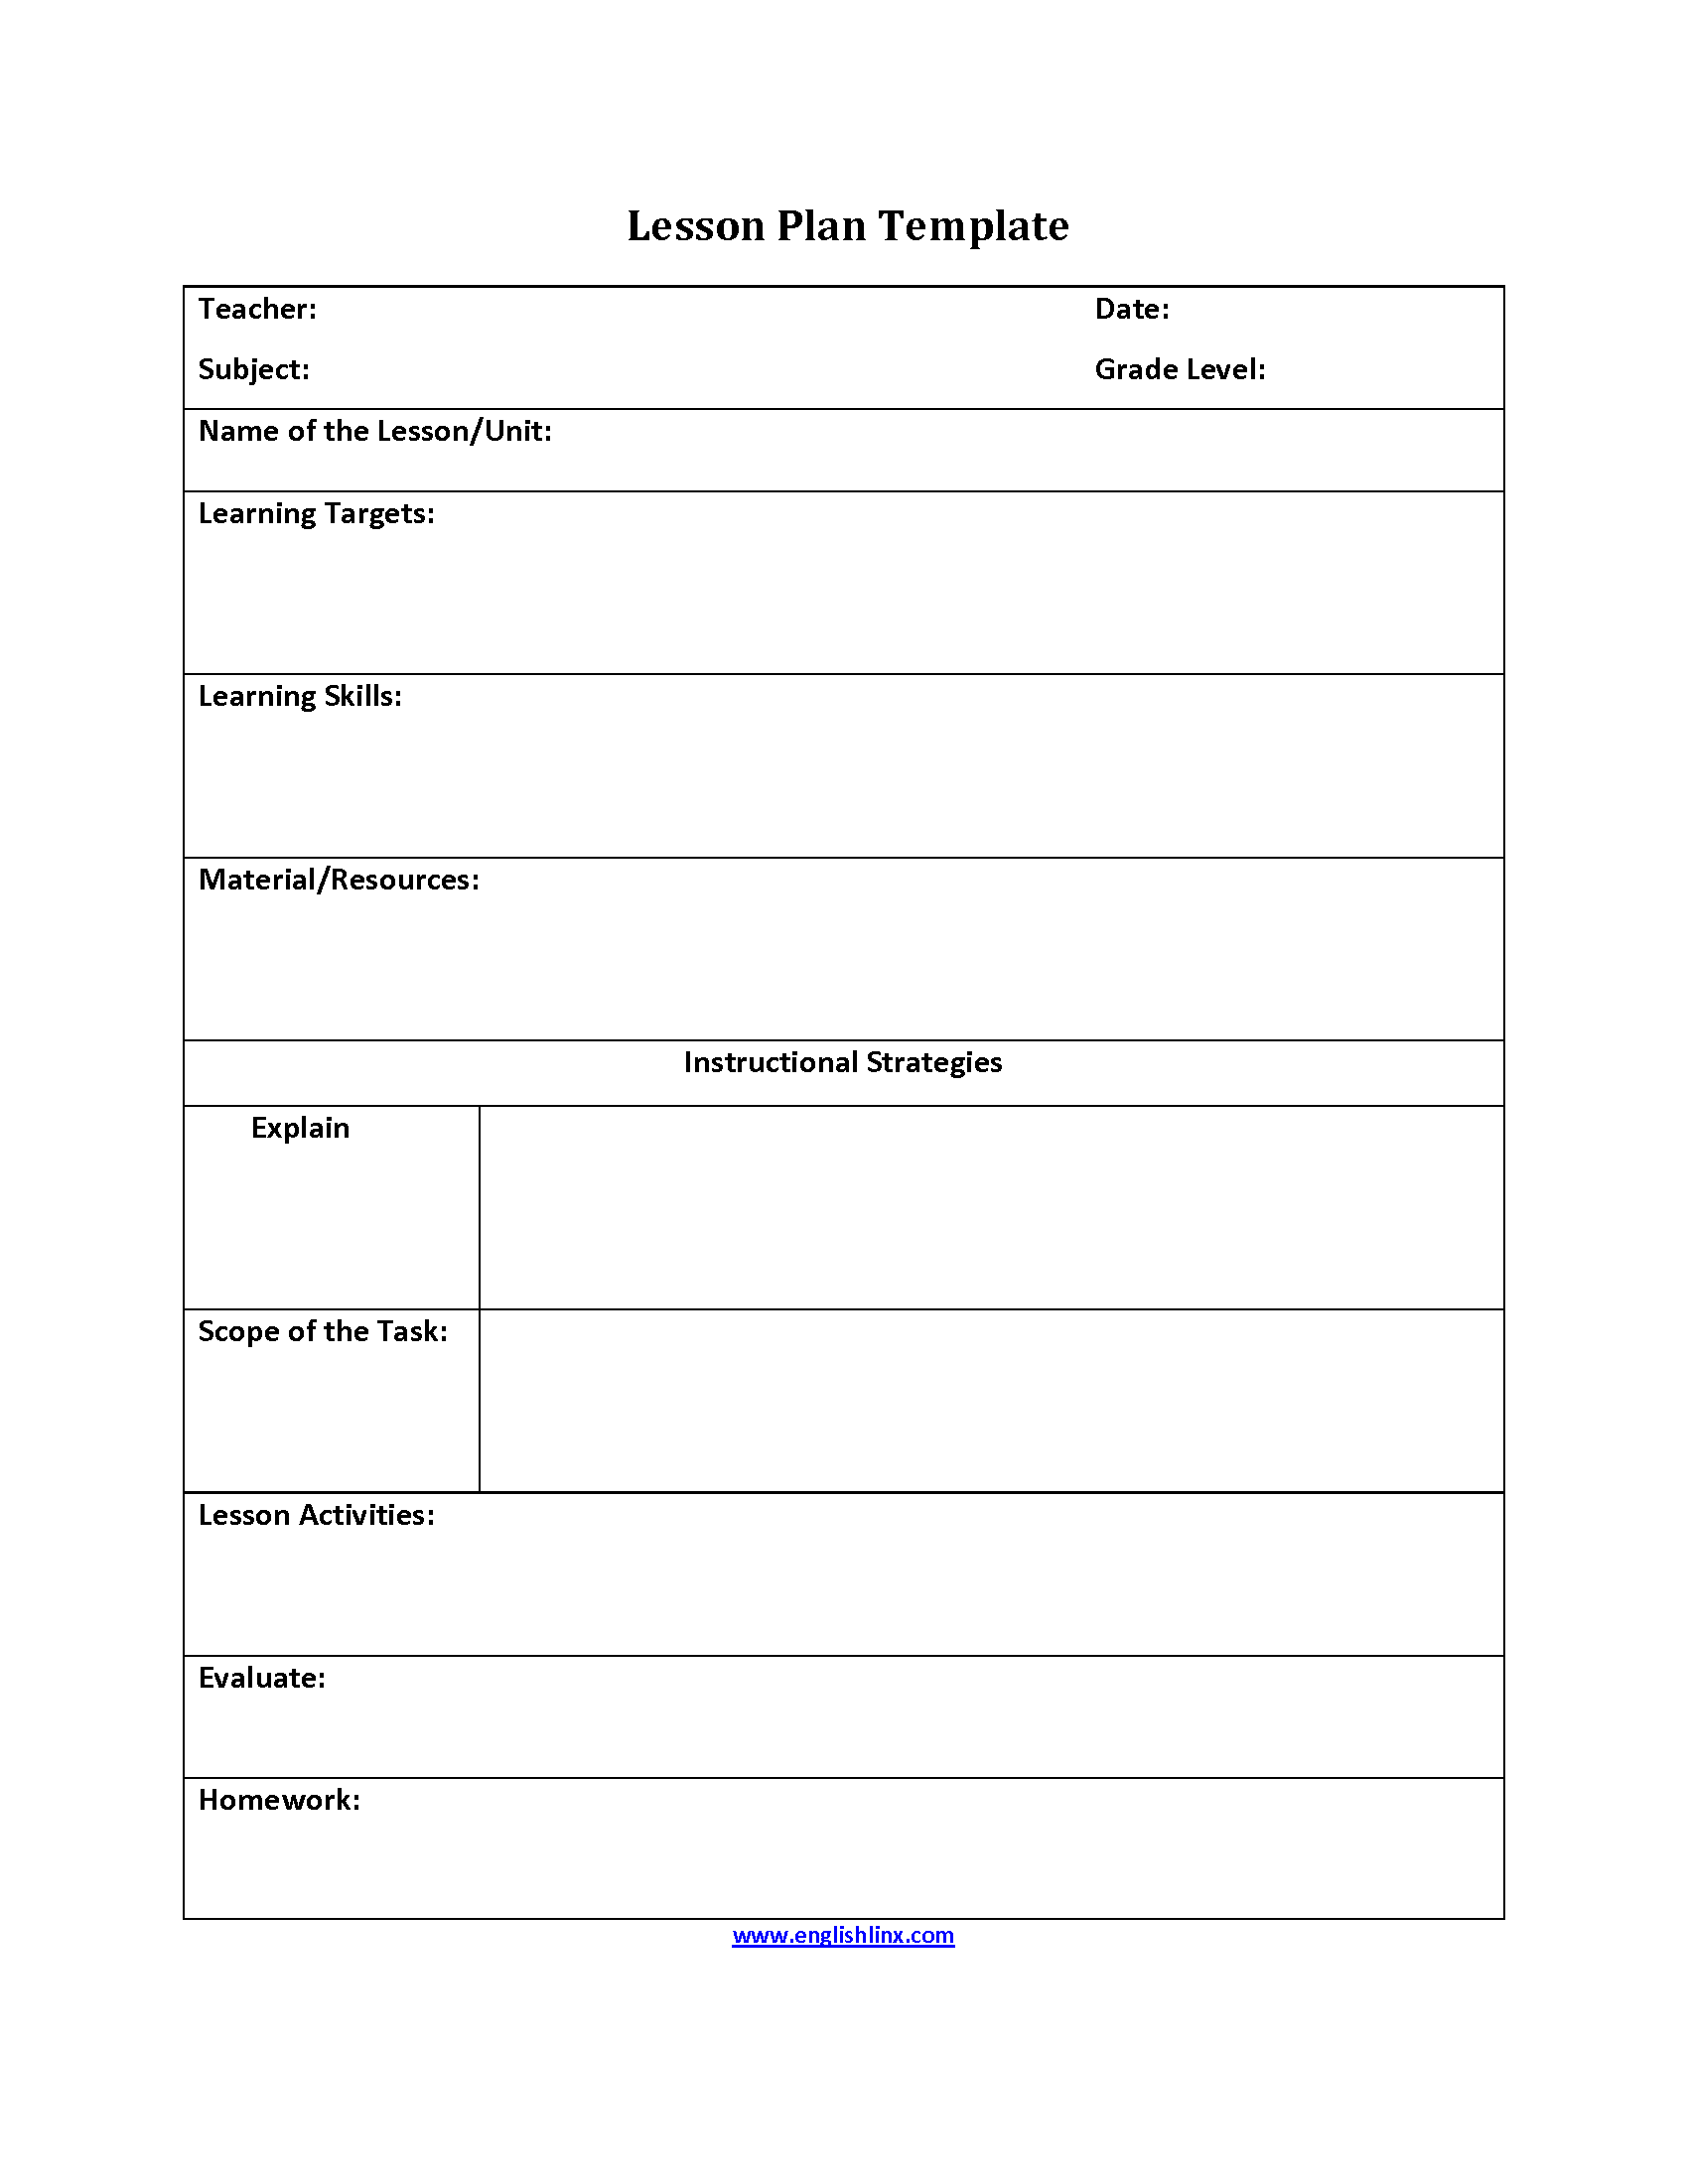 Lesson plan template for Outline of a lesson plan template